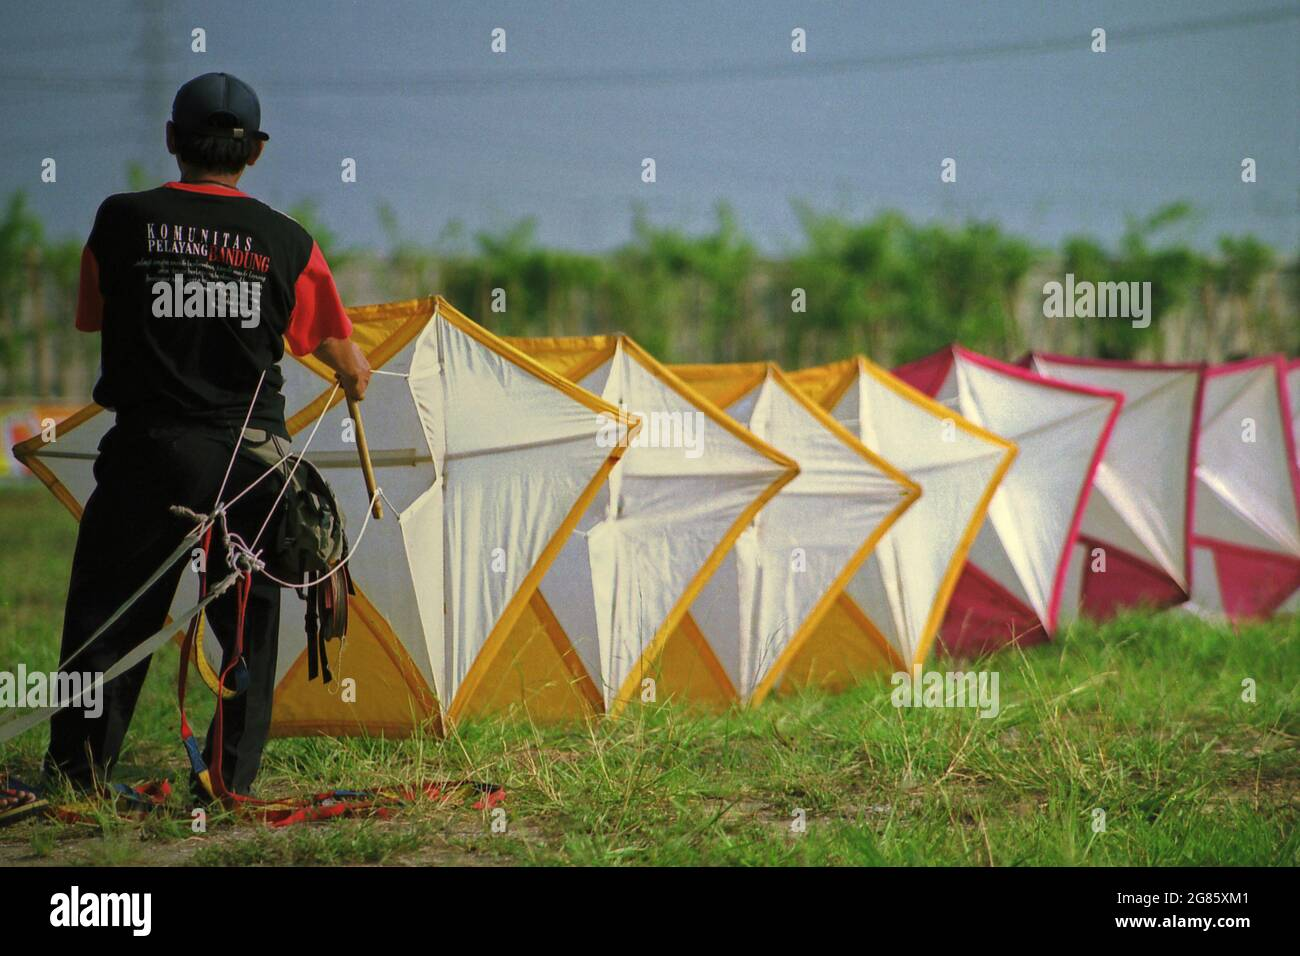 A man preparing a giant kite during the 2004 Jakarta International Kite Festival that held on July 9-11 at Carnival Beach in Ancol Dreamland, North Jakarta, Jakarta, Indonesia. Stock Photo